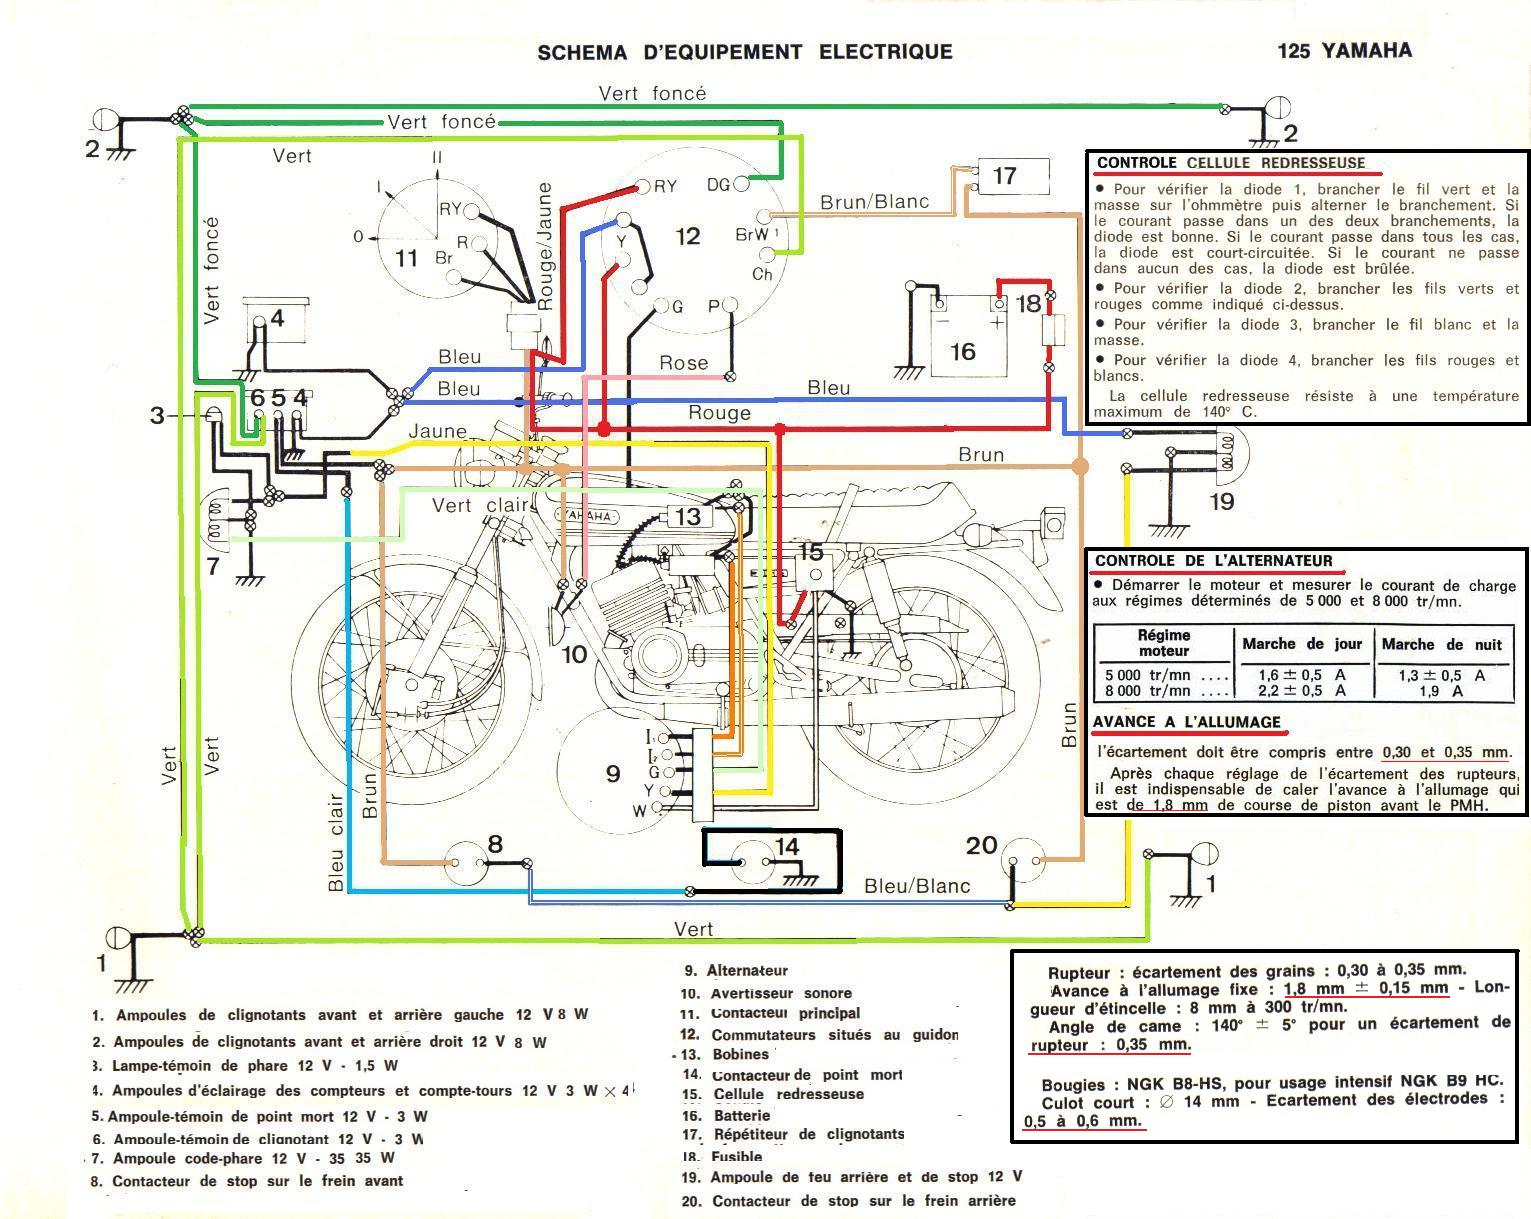 schema_20elect_20couleur_2Bn Yamaha Xt Wiring Diagram on xb 600 wiring diagram, xt 250 wiring diagram, vx 600 wiring diagram, xt 500 wiring diagram, hp 600 wiring diagram, vt 600 wiring diagram, xt 600 brake pads, fzr 600 wiring diagram,